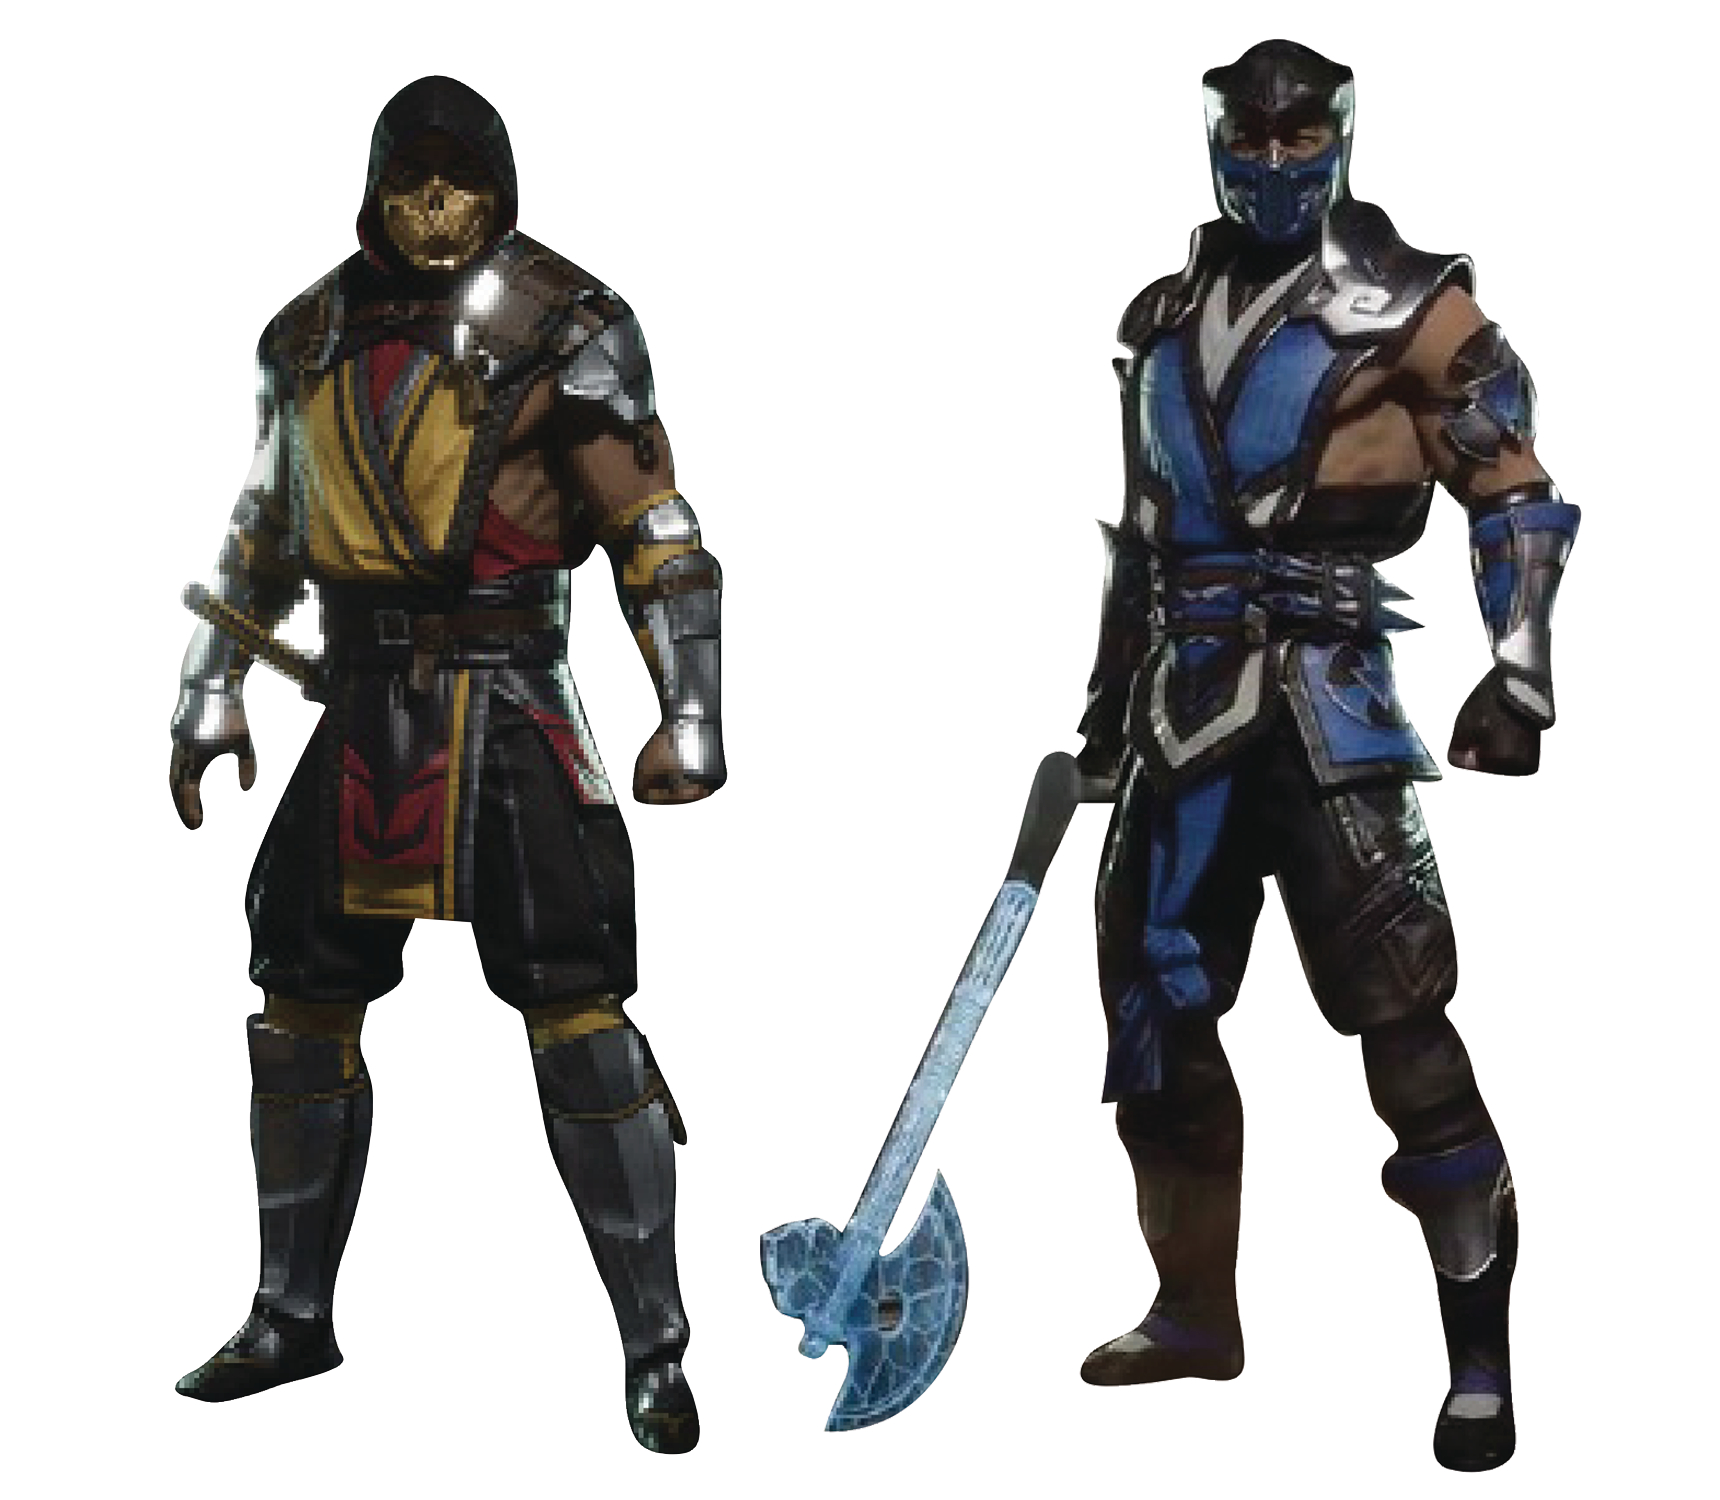 MORTAL KOMBAT SCORPION/SUB-ZERO 7IN AF ASST